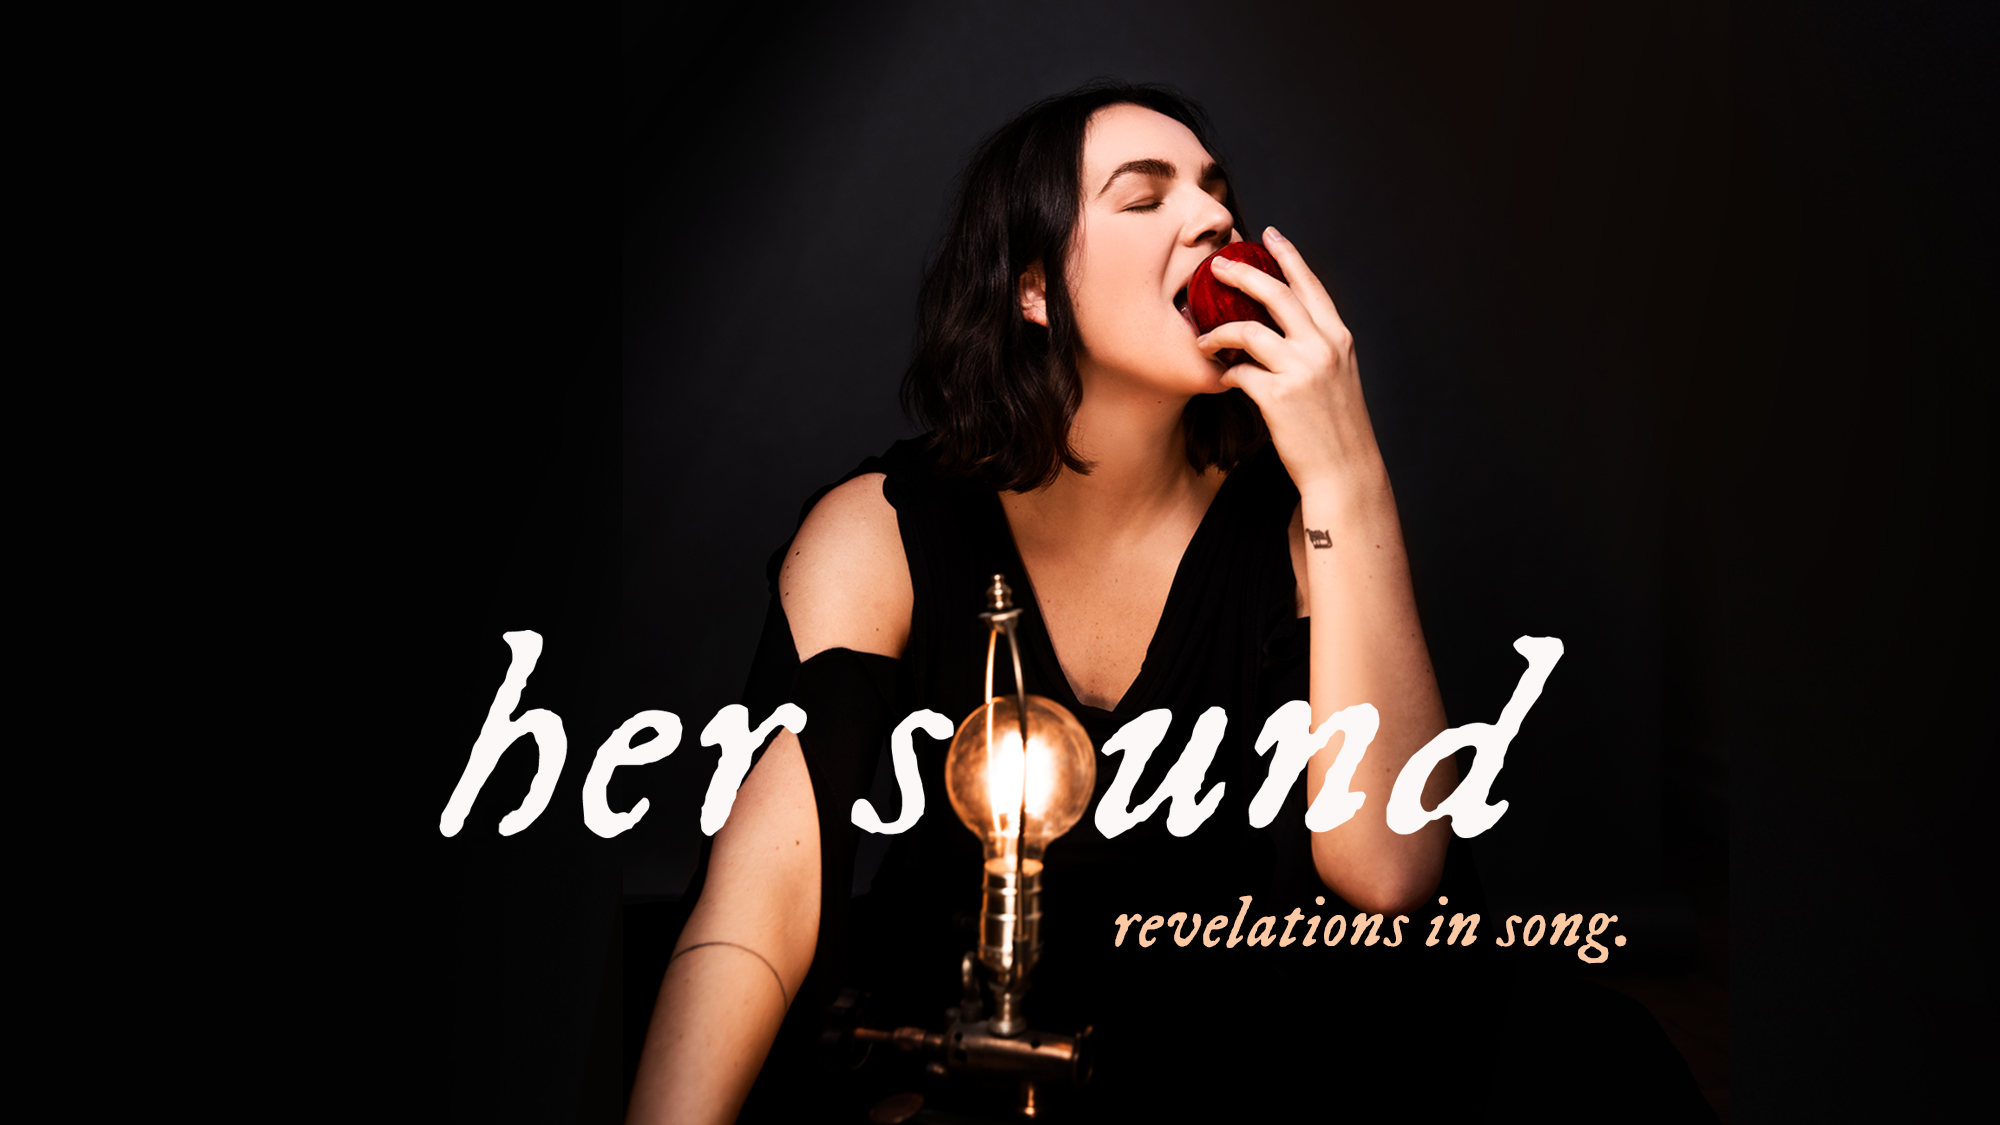 Her Sound: Revelations in Song by Ethan Carlson